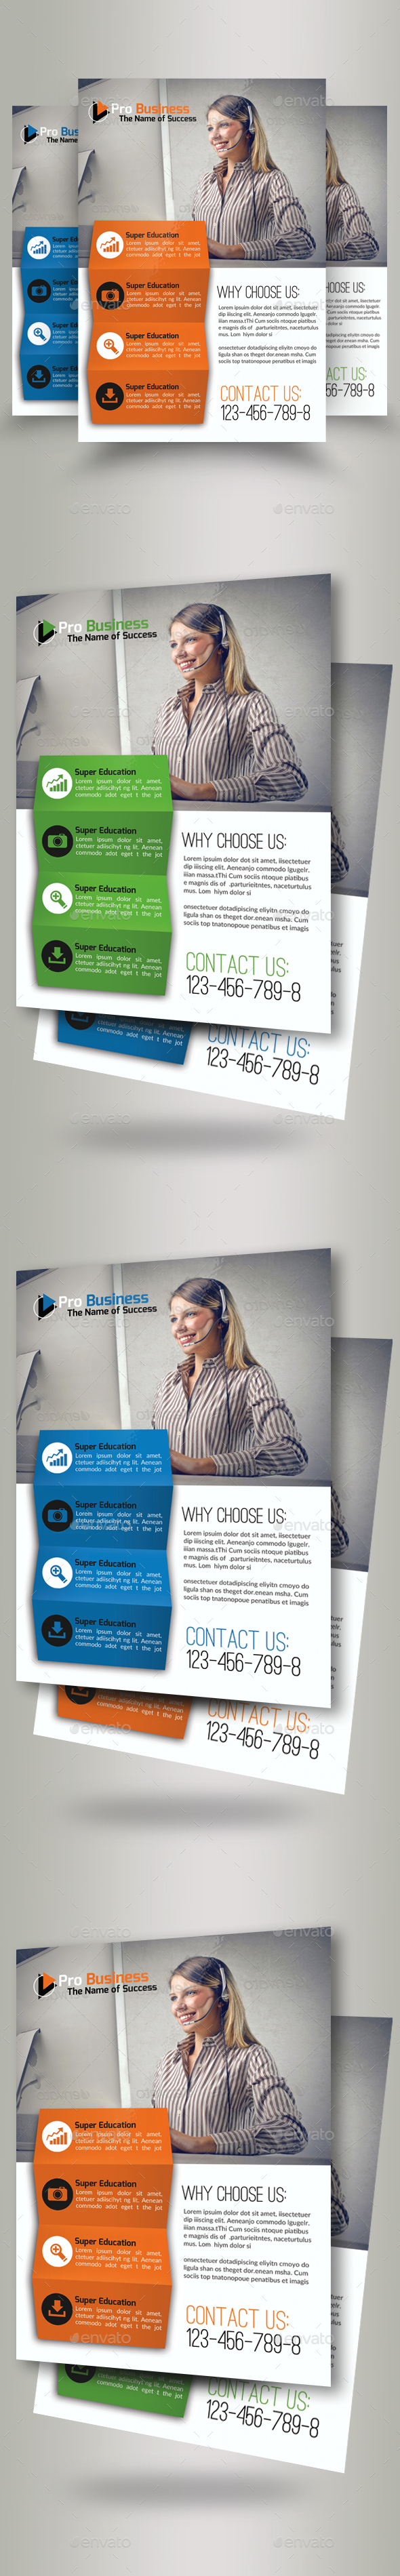 Business Dealing Flyers Psd - Corporate Flyers